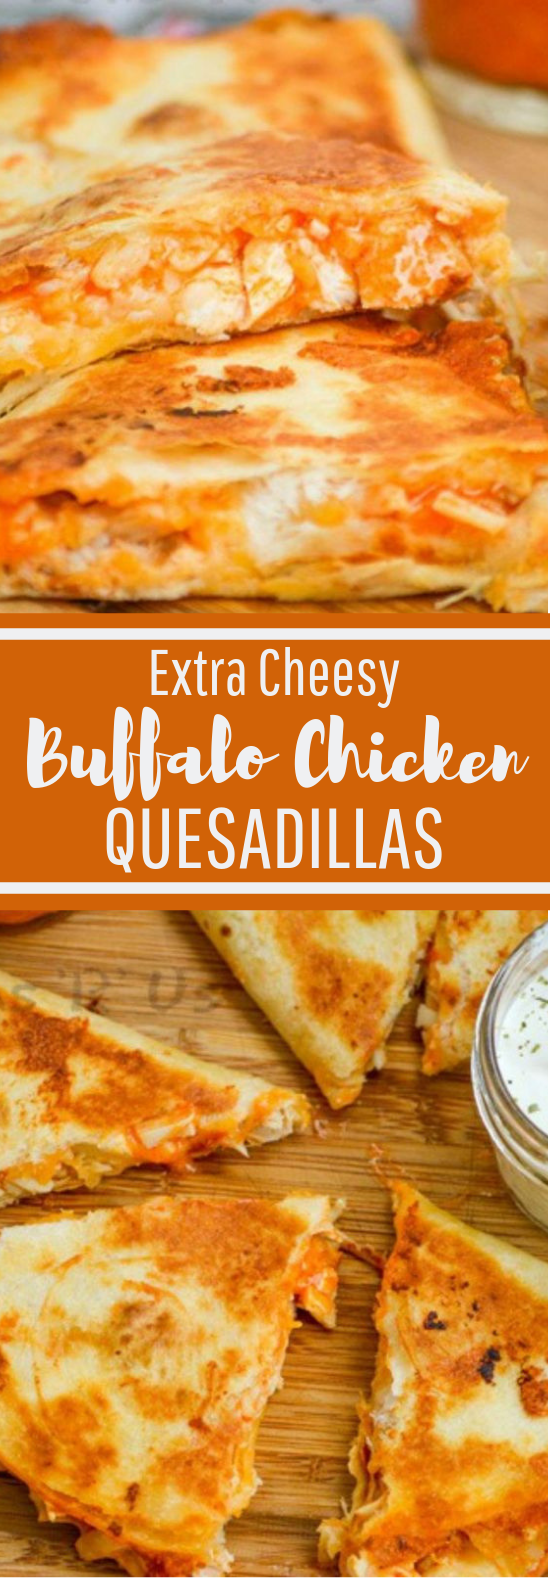 Photo of Quesadillas de pollo Buffalo con queso extra #deliciousrecipe #lunch